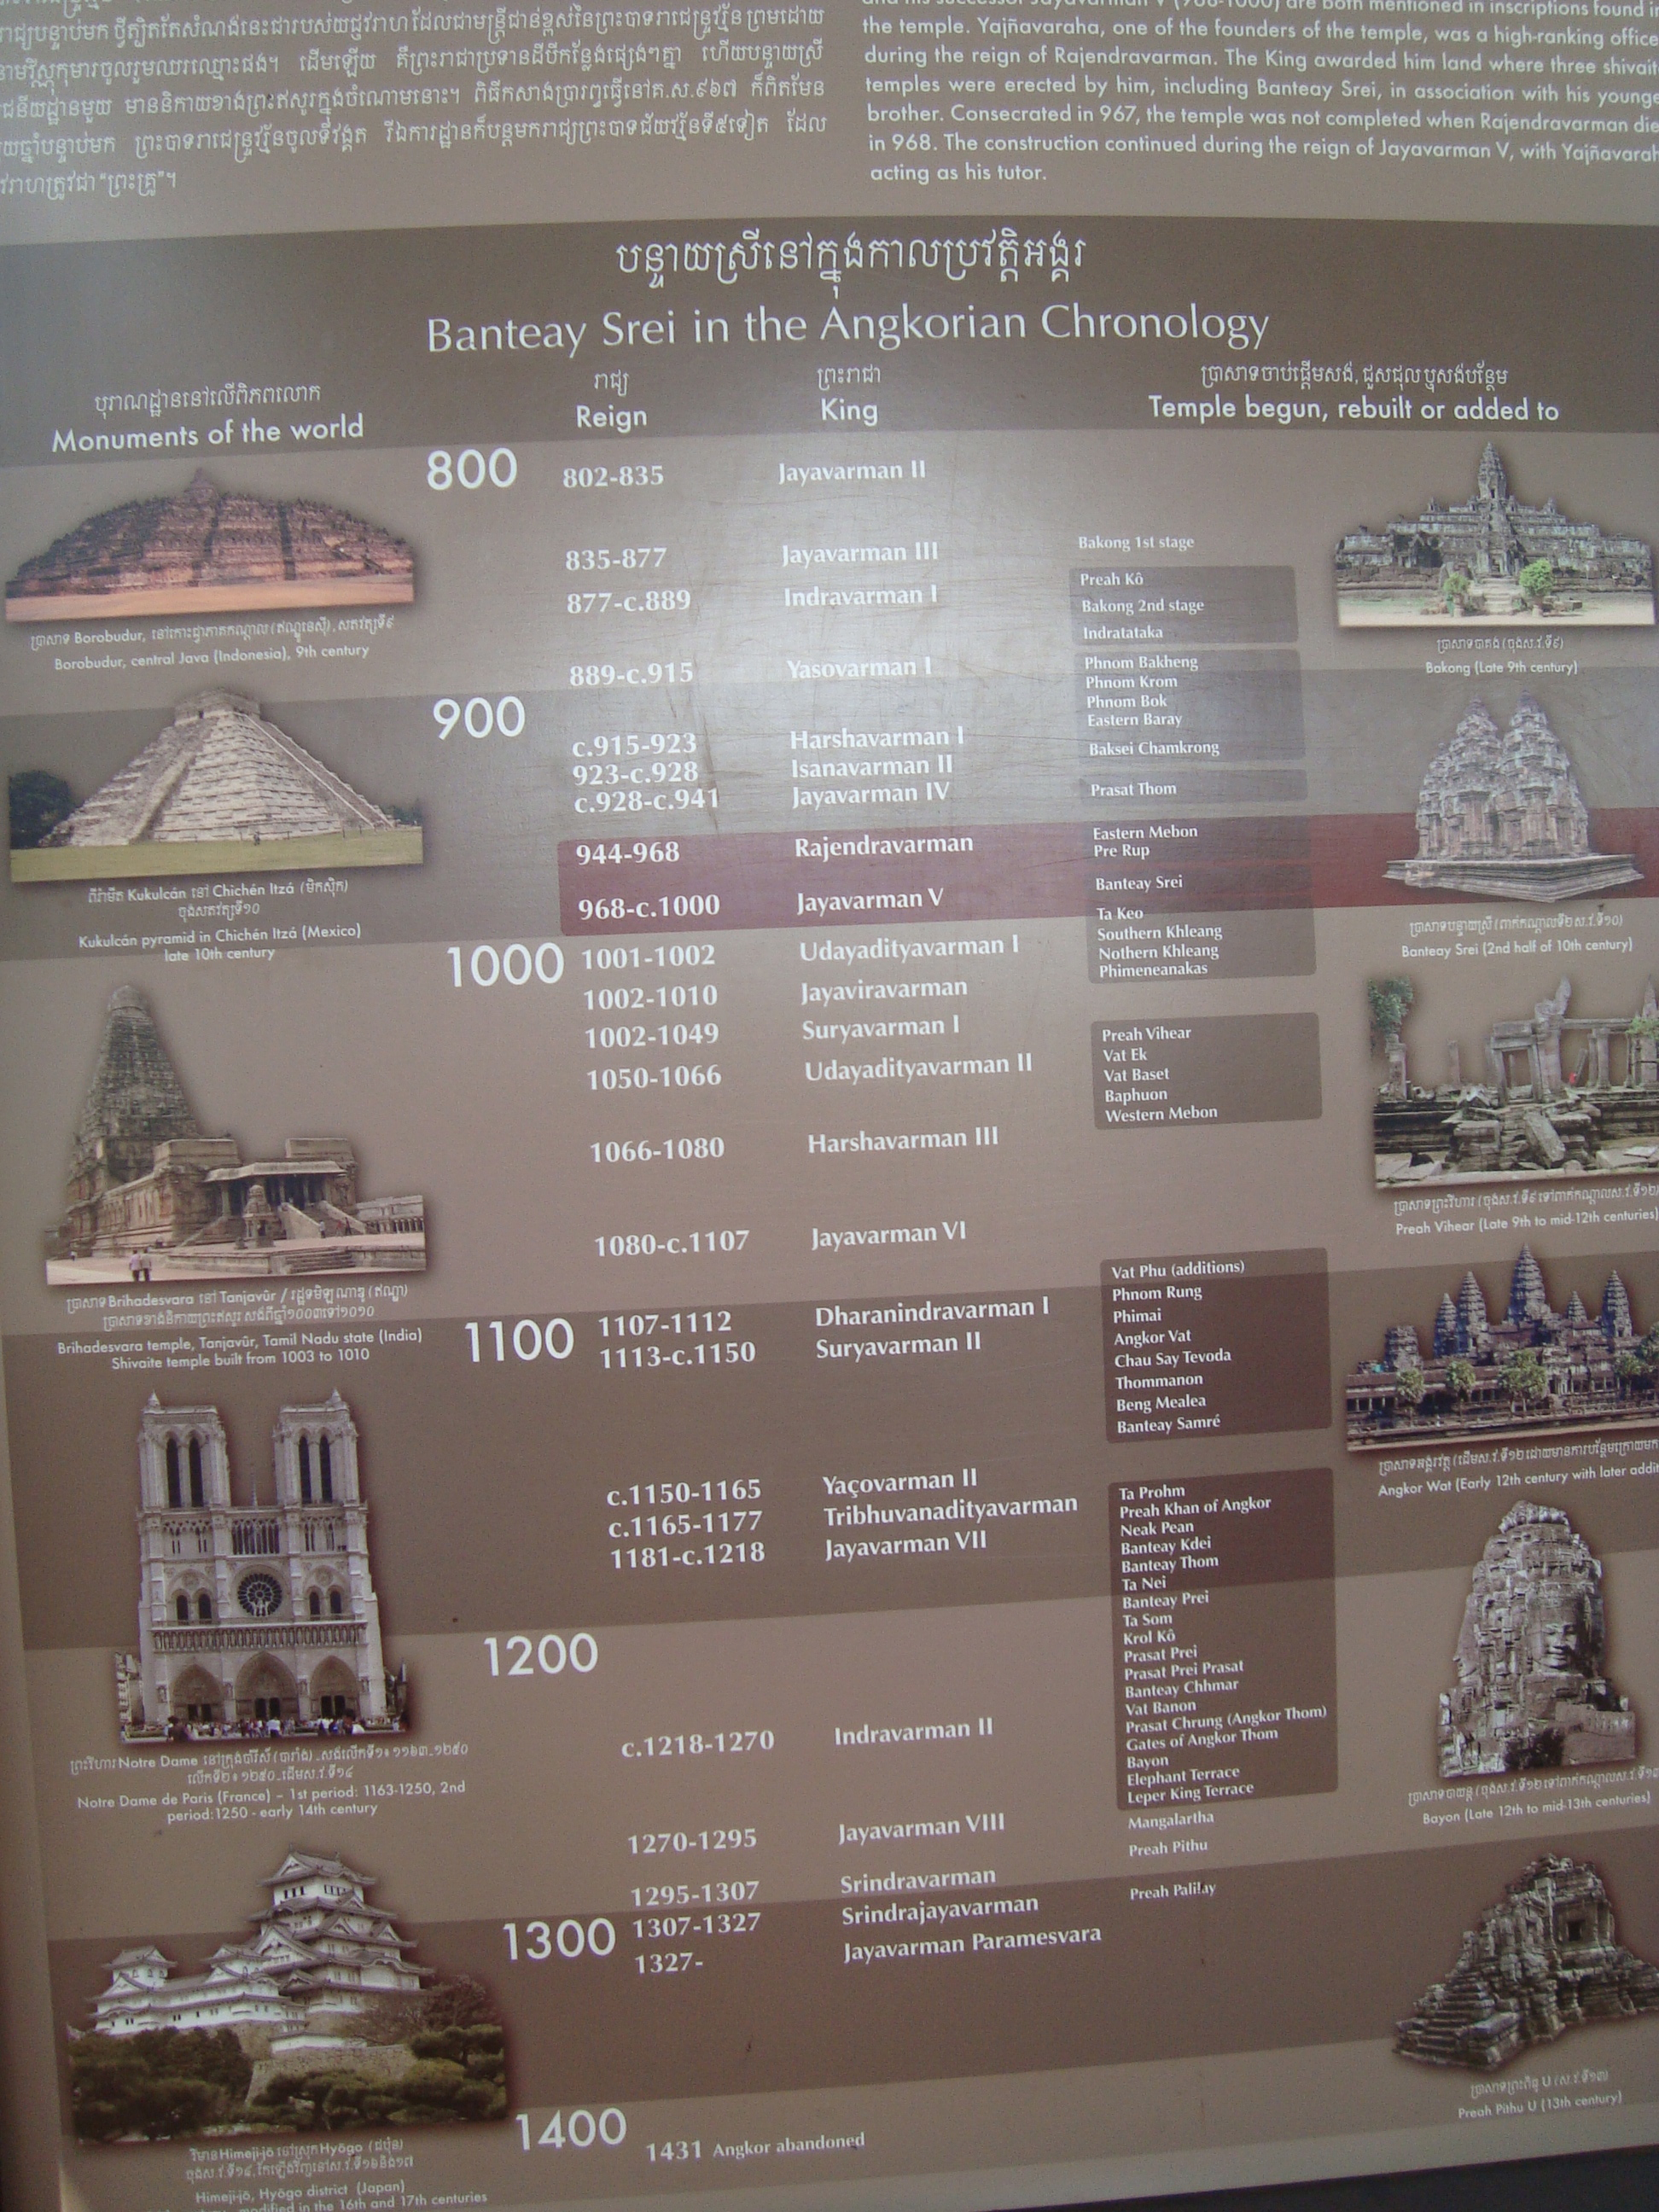 For the history buffs, this was a neat timeline showing all of the Angkor temples down the right side and dating them in the context of other famous temples and monuments listed on the left.